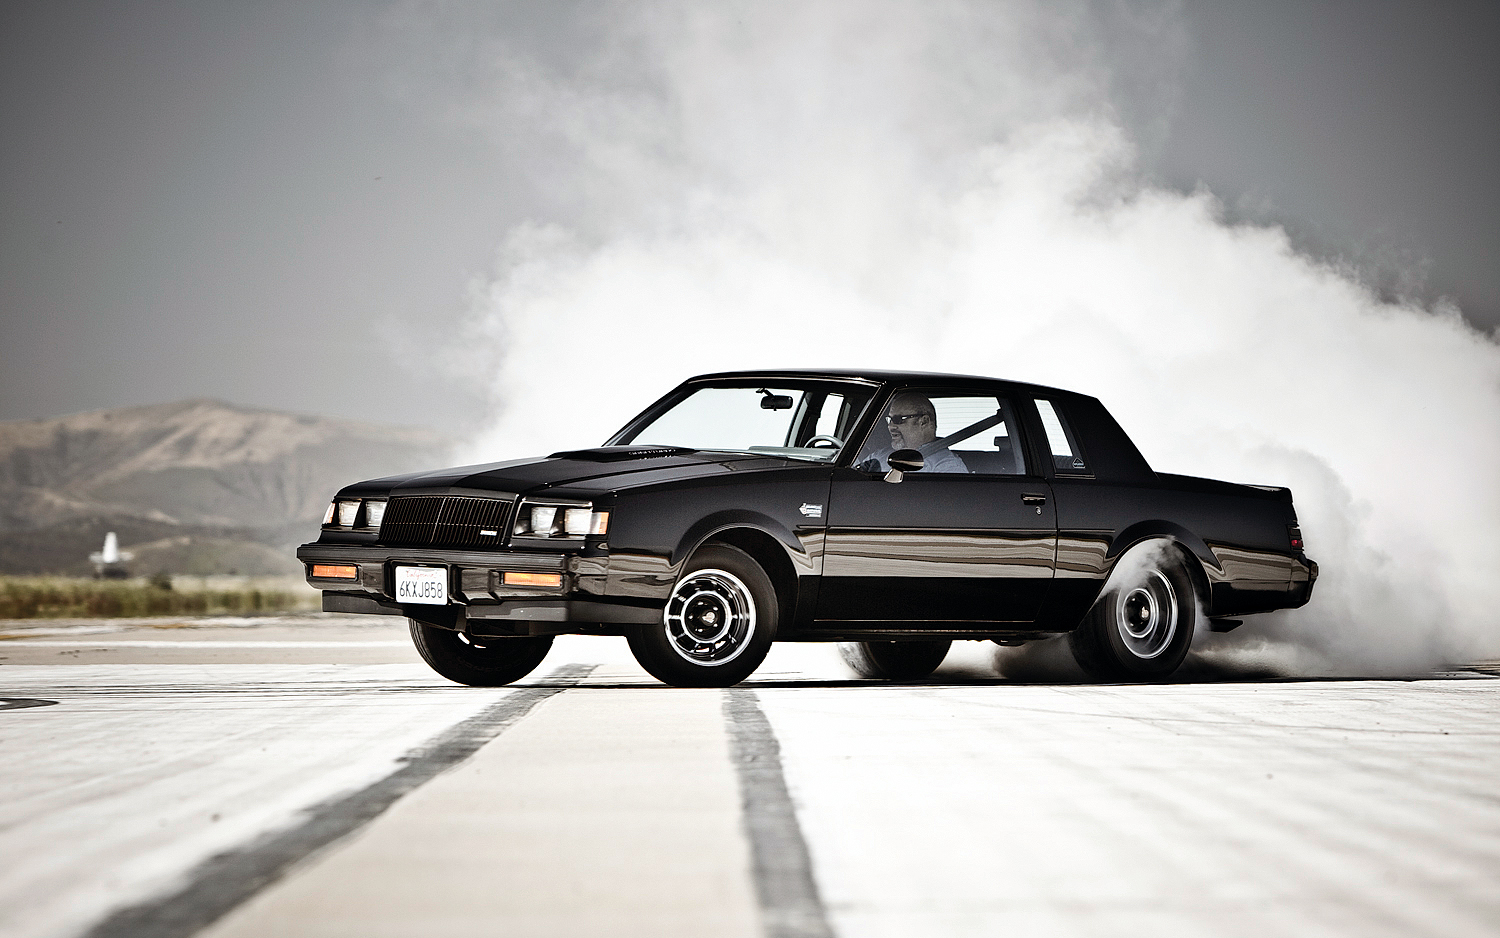 Gotta love a smokey burnout Photo: motortrend